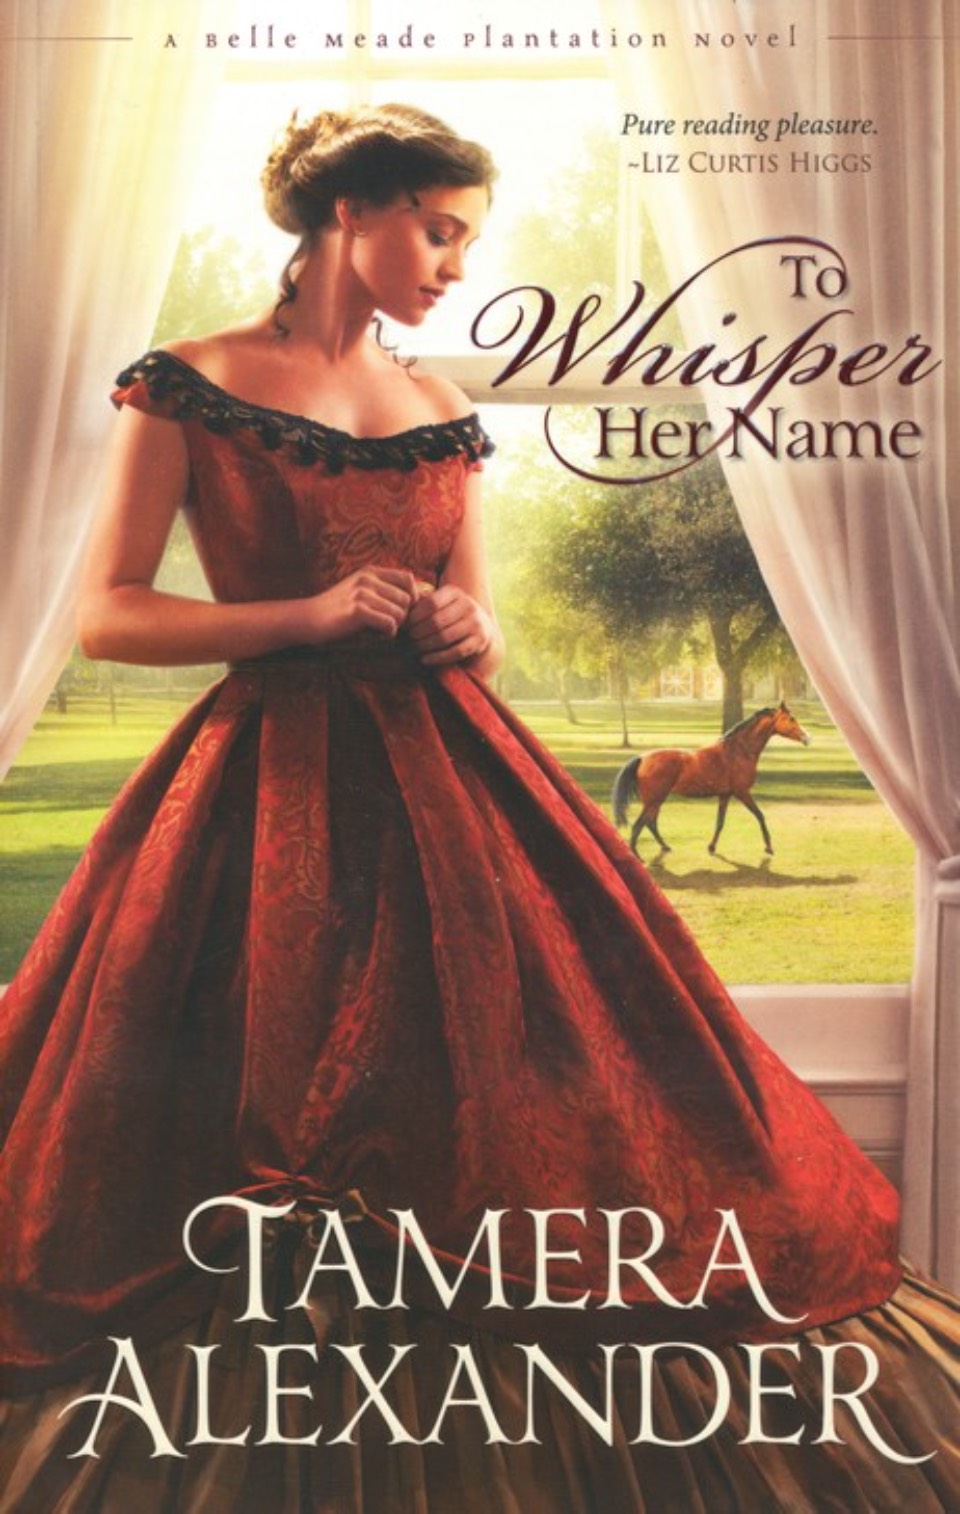 Book 1, Belle Meade novels